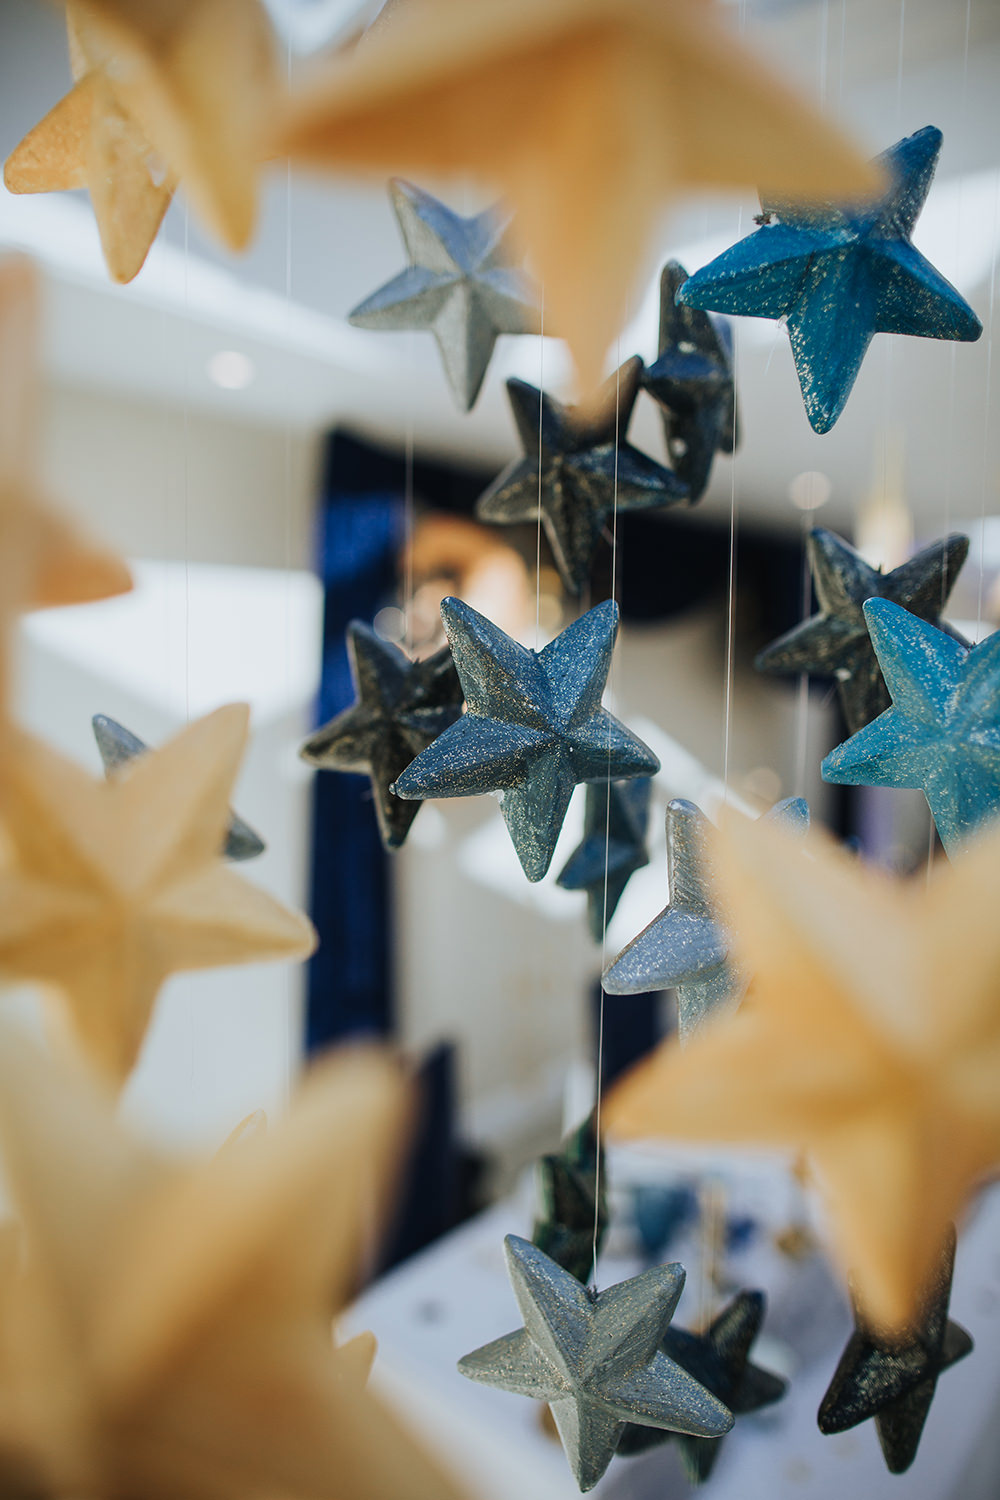 Tablescape Table Decor Hanging Suspended Blue Gold Moon Stars Wedding Ideas Olegs Samsonovs Photography